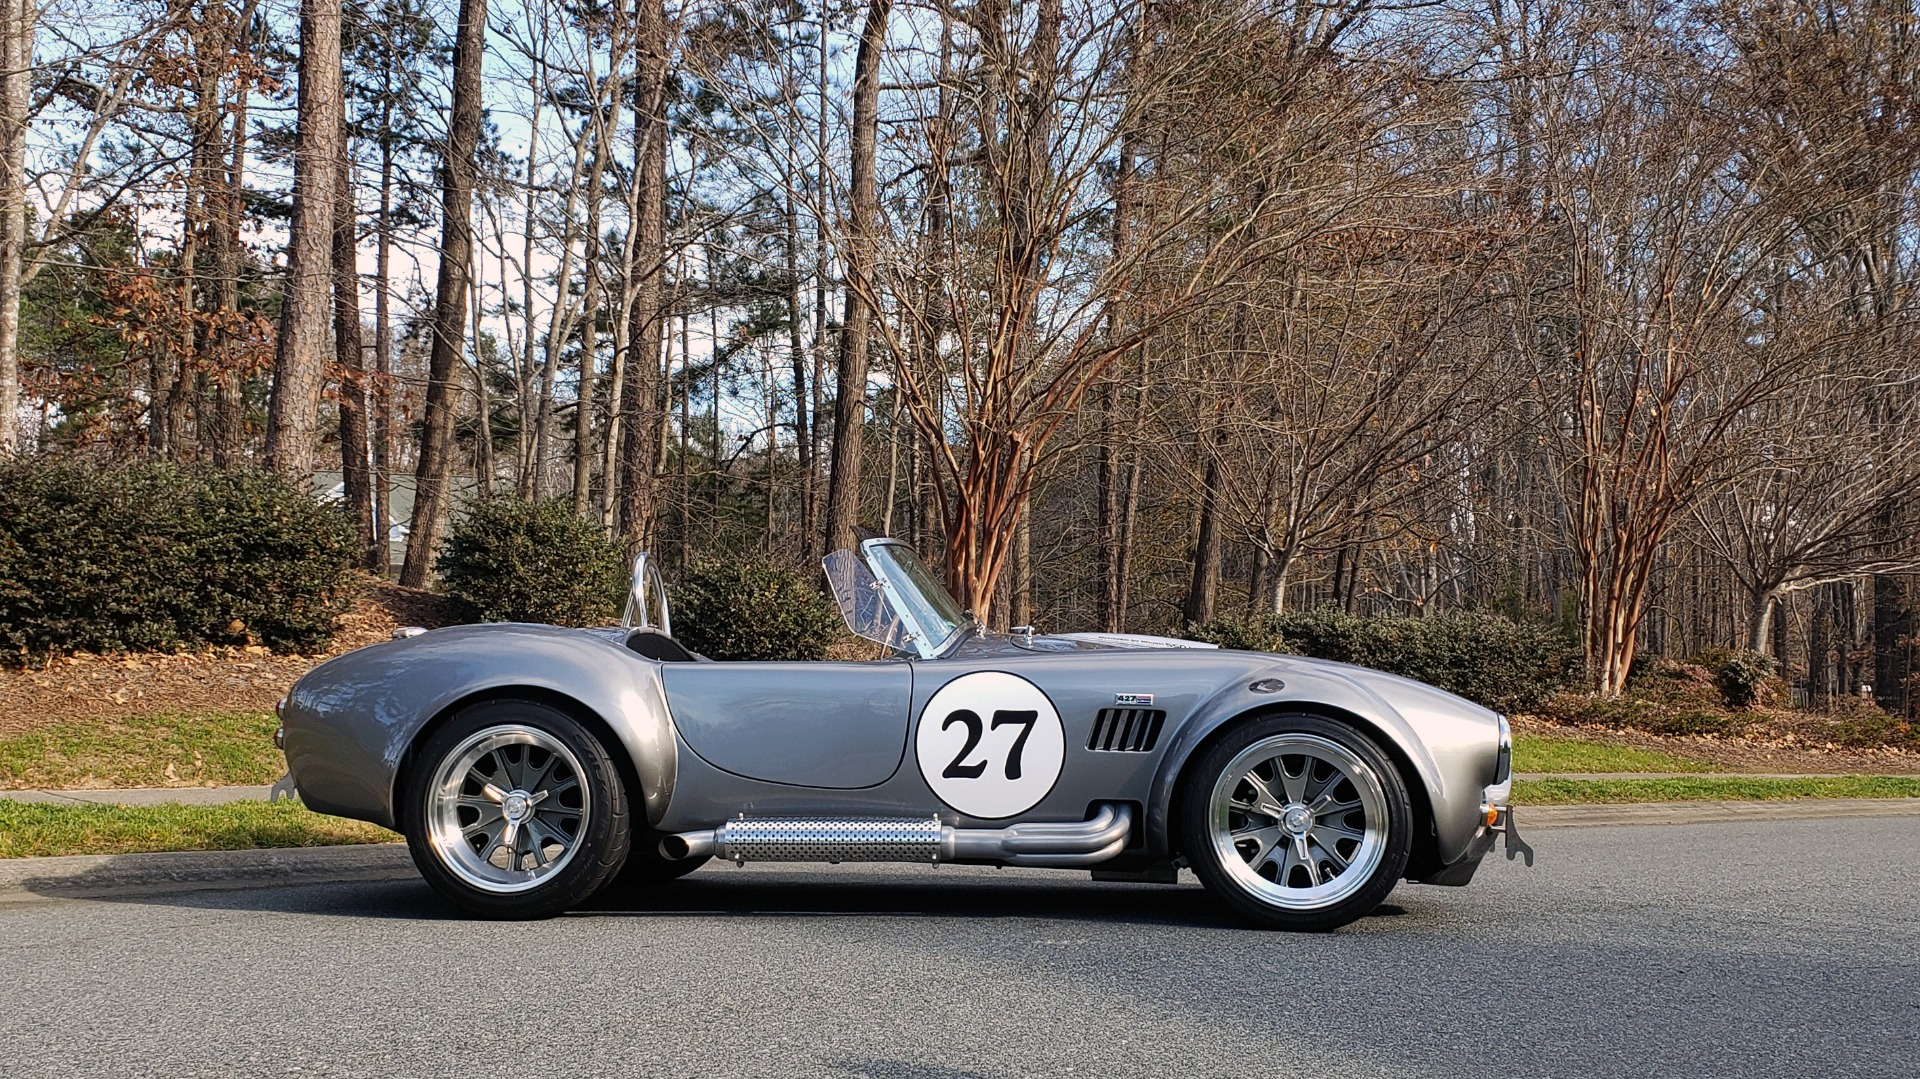 Used 1965 Ford COBRA 427 ROADSTER BY BACKDRAFT RACING ROUSH 553HP V8 / TREMEC 6-SPD / PWR STRNG for sale $74,999 at Formula Imports in Charlotte NC 28227 5